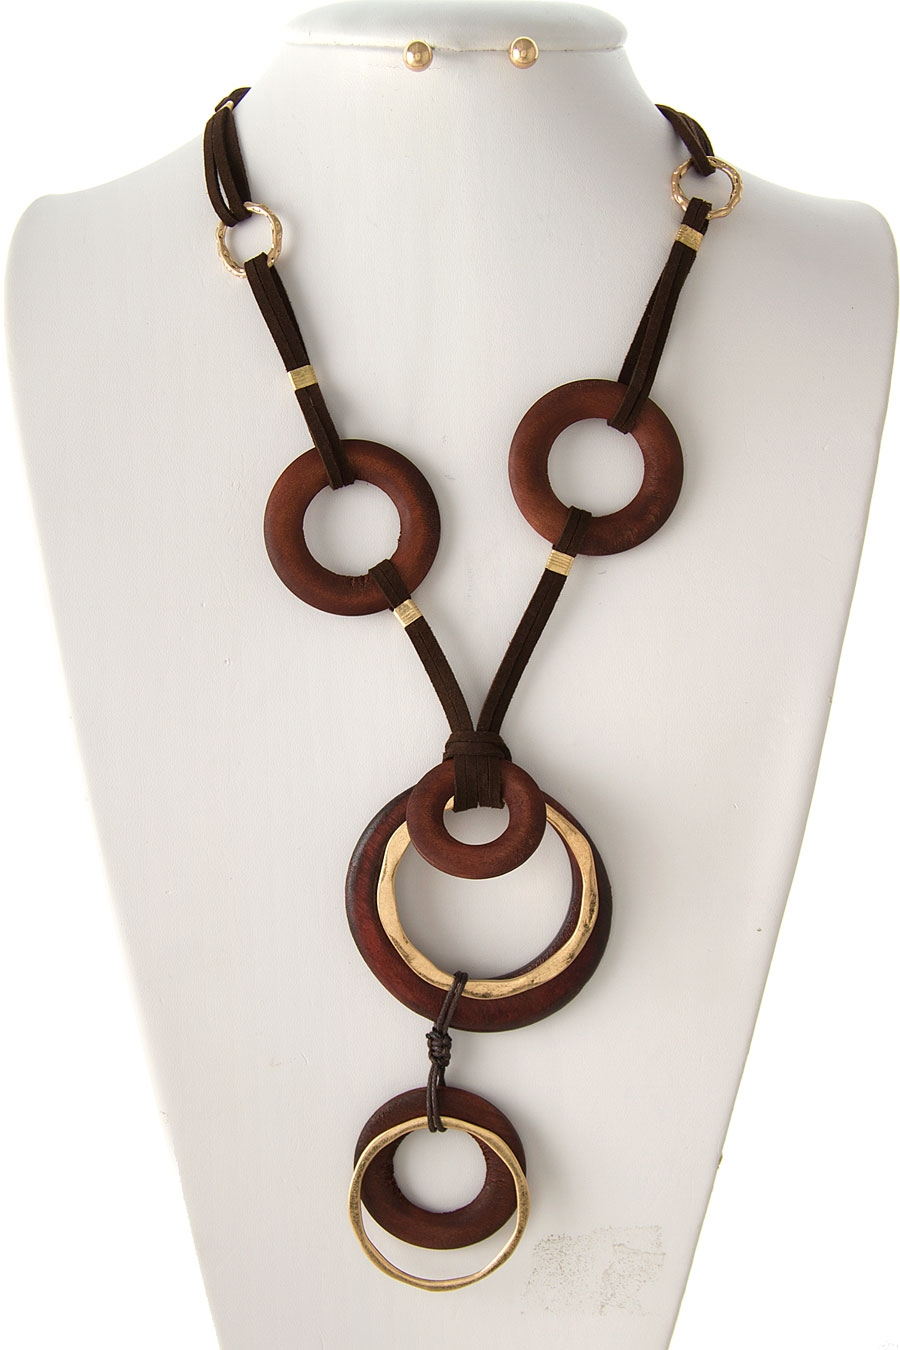 MULTI WOOD RING NECKLACE - orangeshine.com